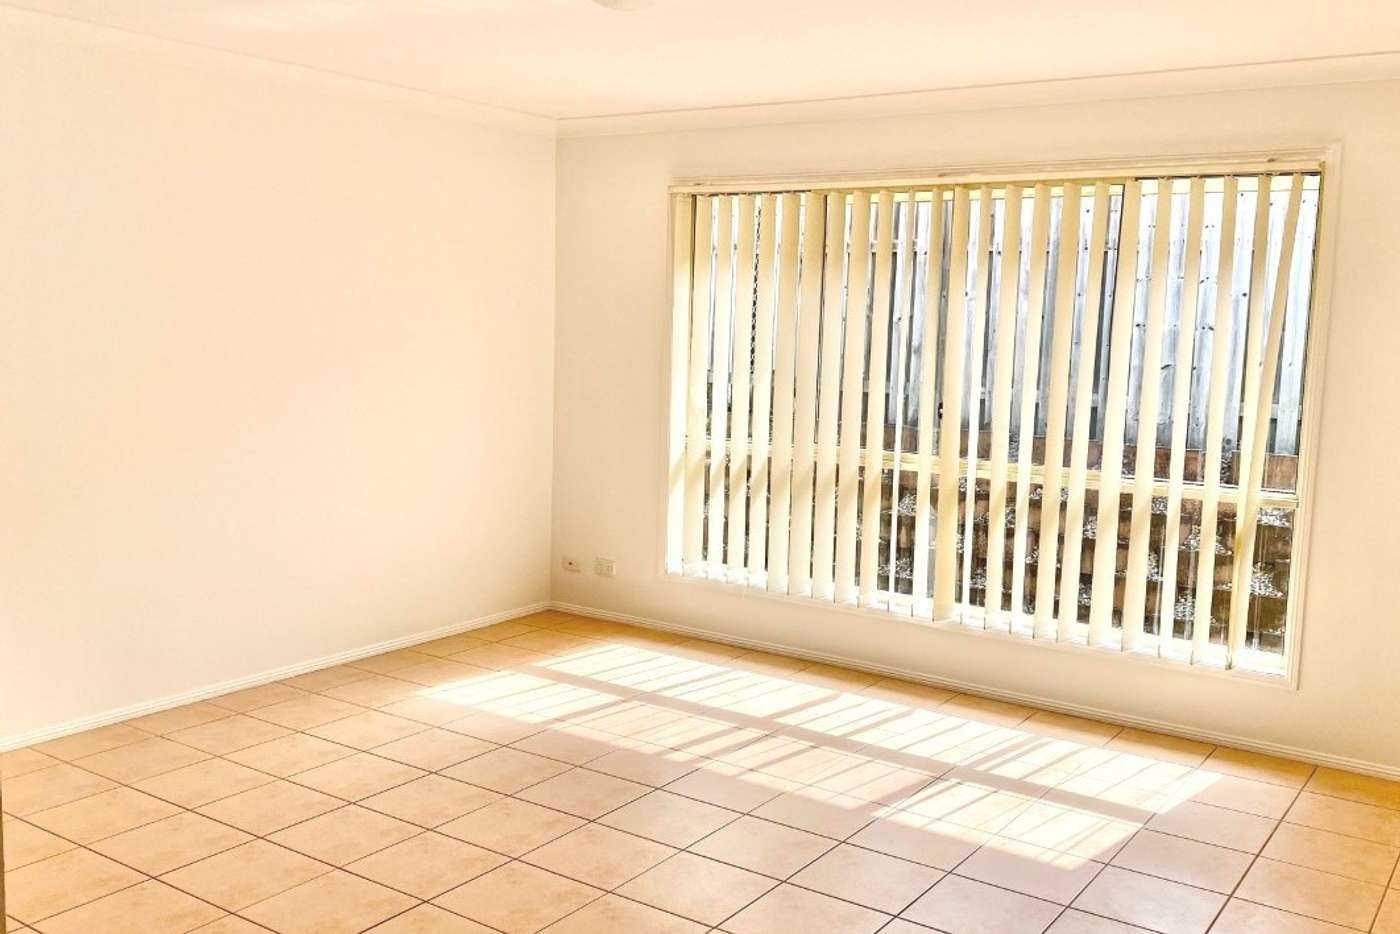 Seventh view of Homely house listing, 15 Greensborough Crescent, Parkwood QLD 4214